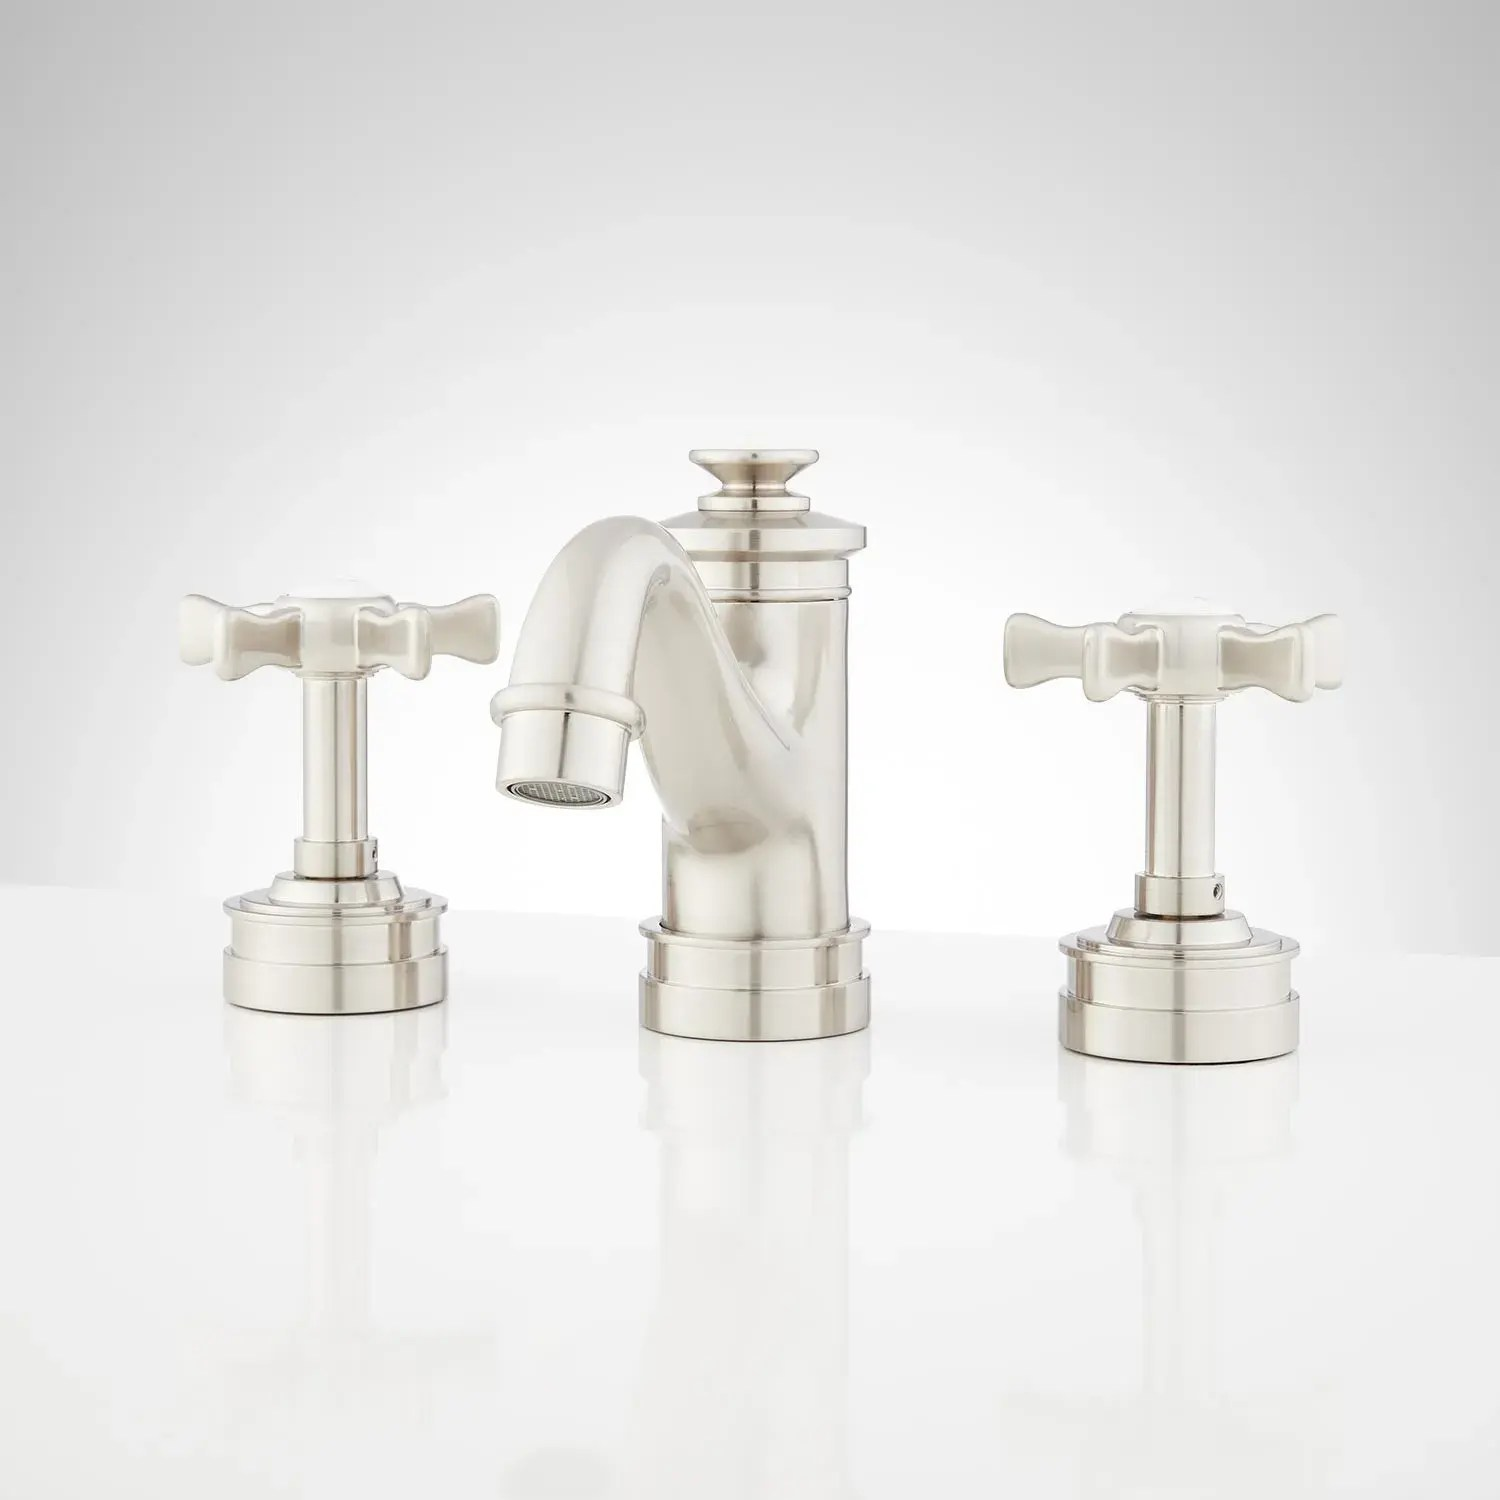 mellwood widespread bathroom faucet with cross handles